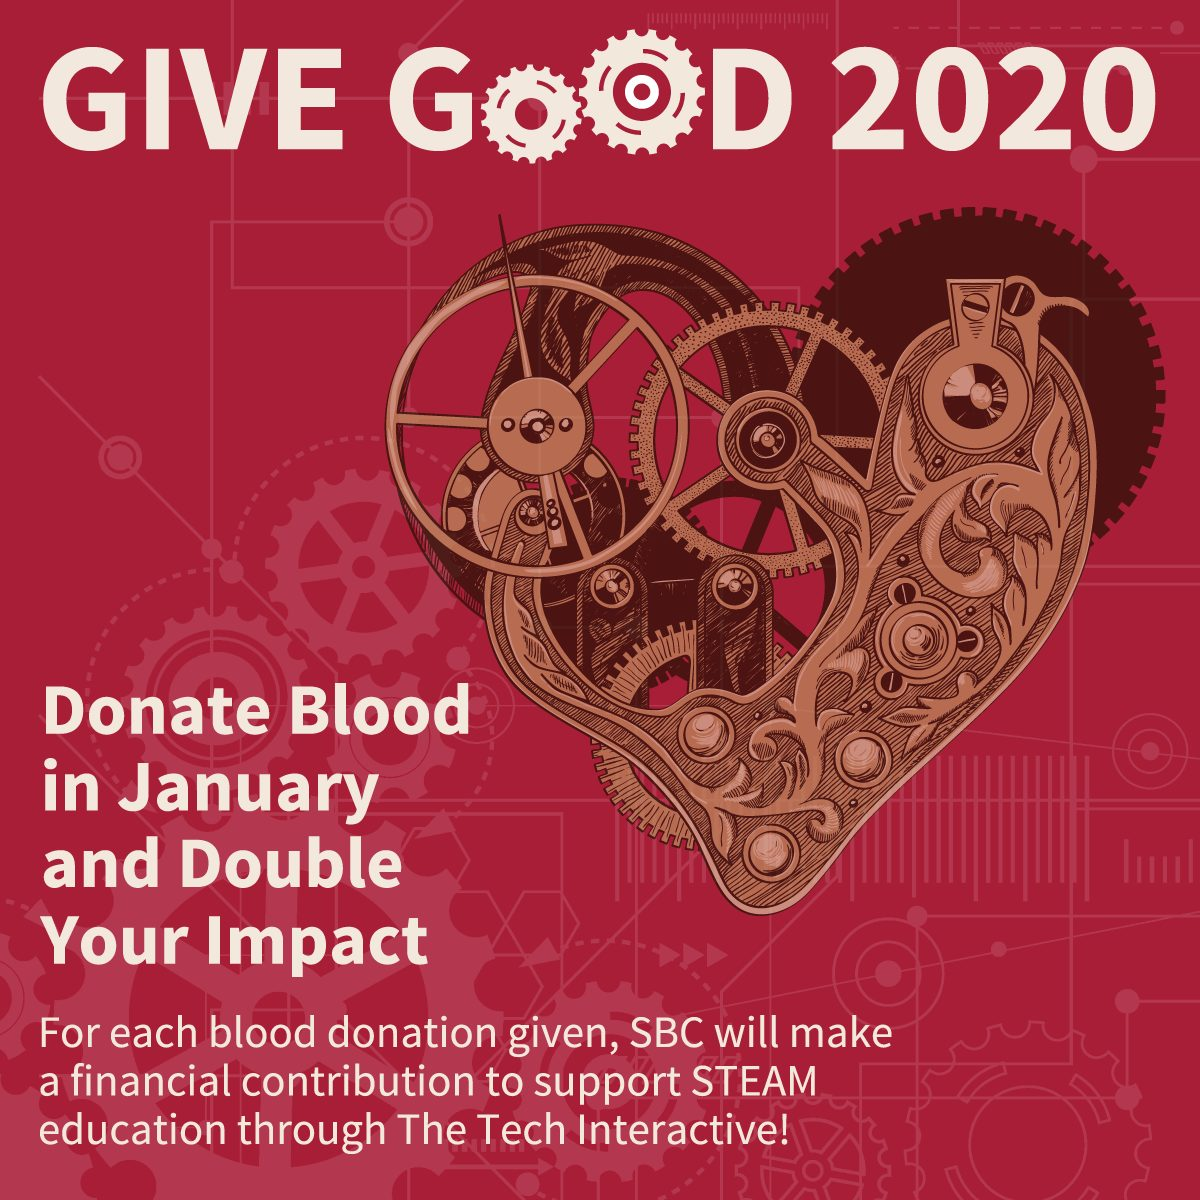 Donate blood in January to support the STEAM education with The Tech